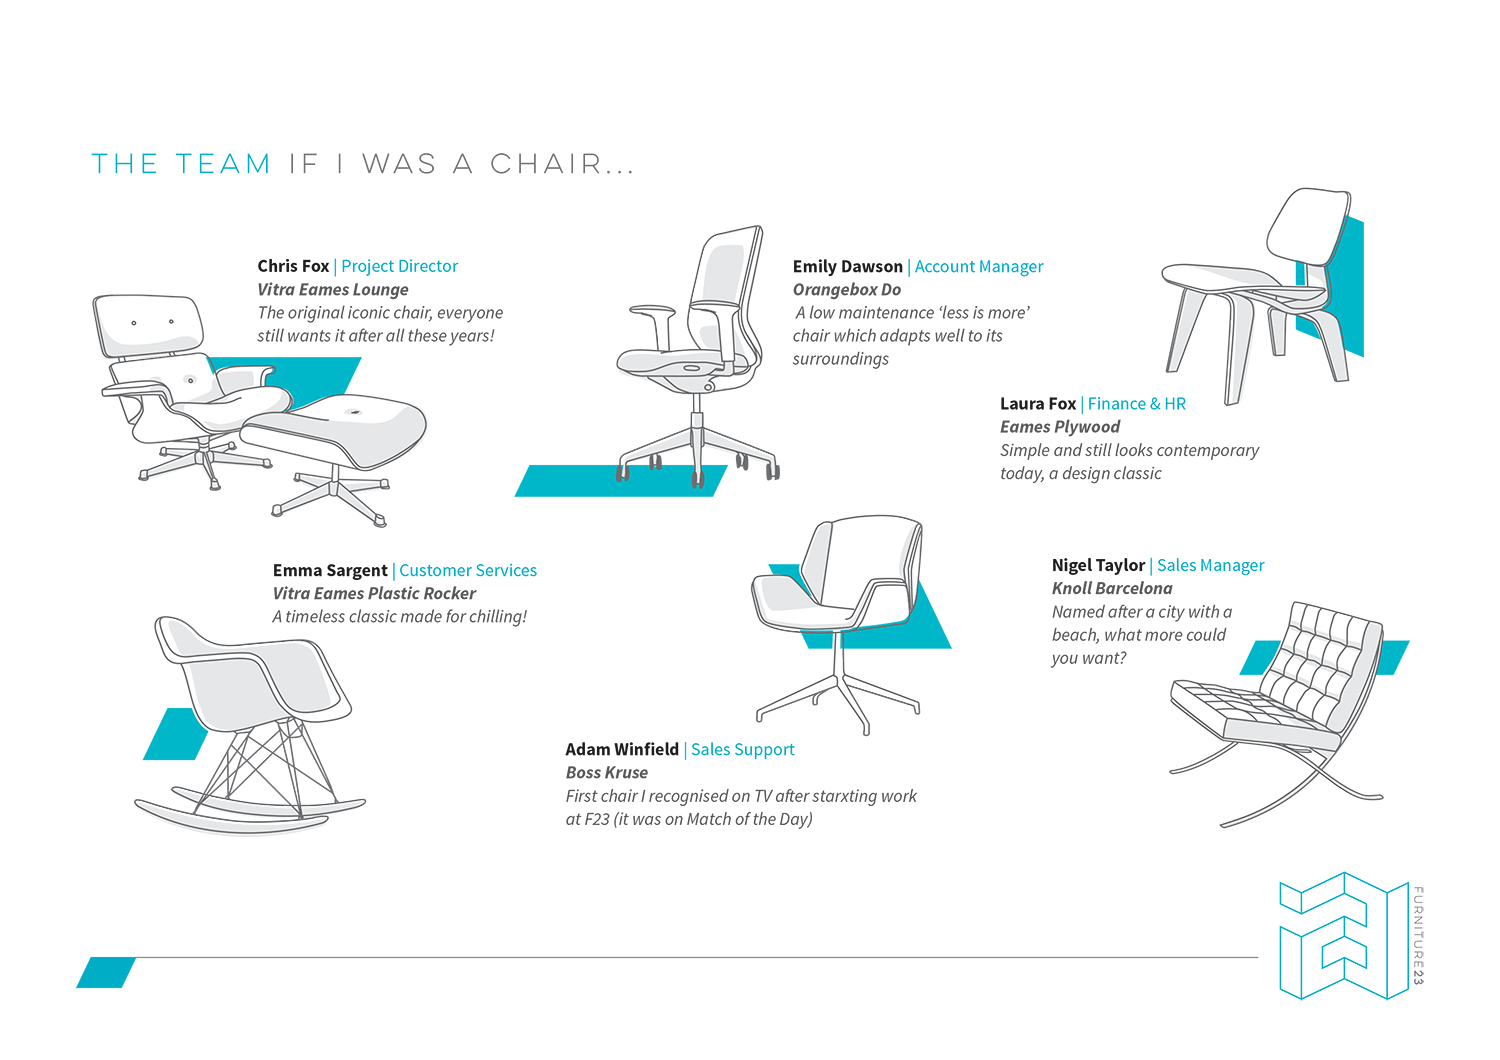 Each team member is represented by their favourite chair, for use in proposal documents.